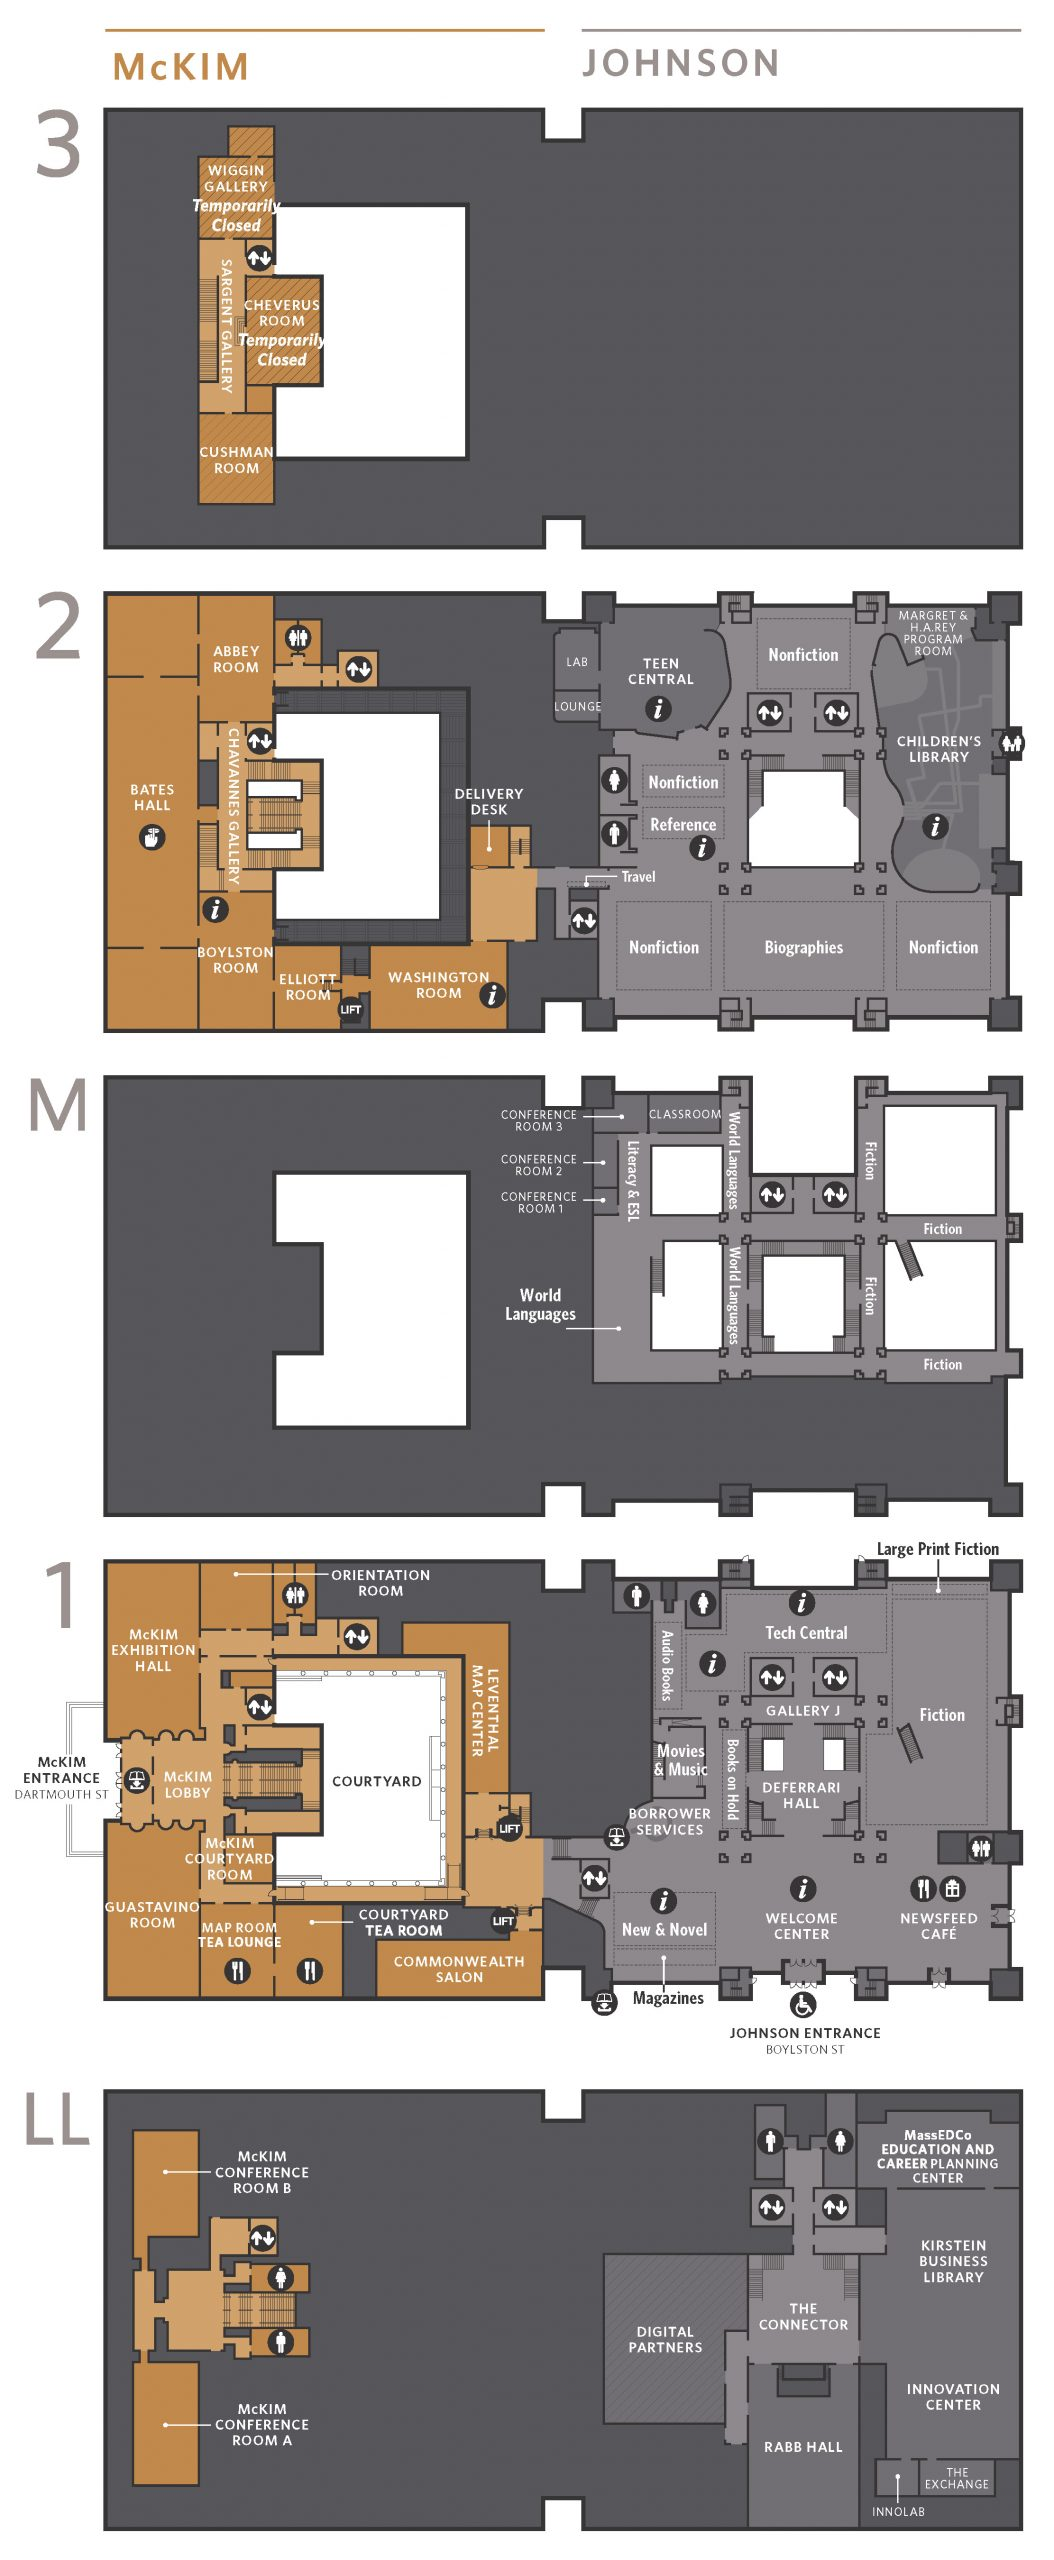 This map shows the lower level, the first floor, the second floor, and third floor of the johnson and Mckim buildings. A more accessible PDF is linked in the page above.